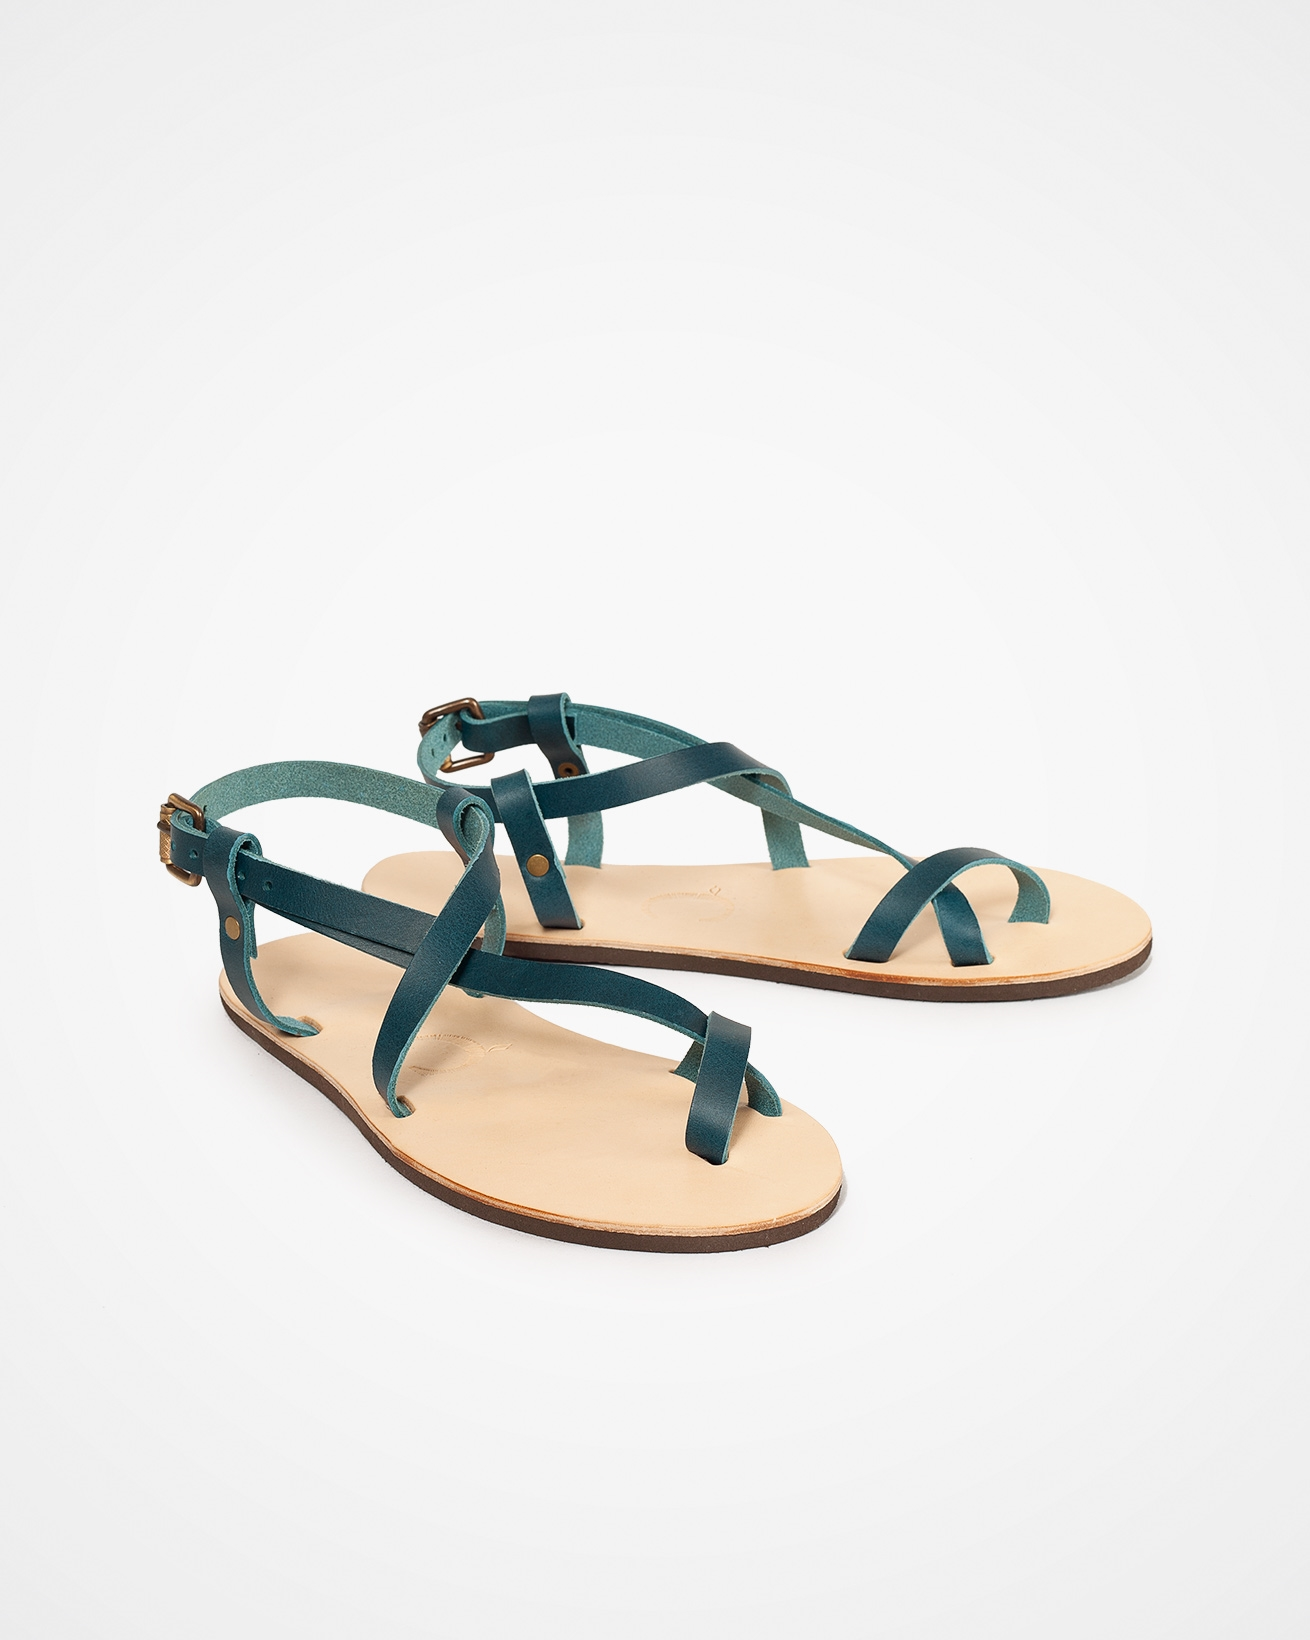 7704_celtic-toe-ring-crossover-sandal_icelandic-blue_pair.jpg